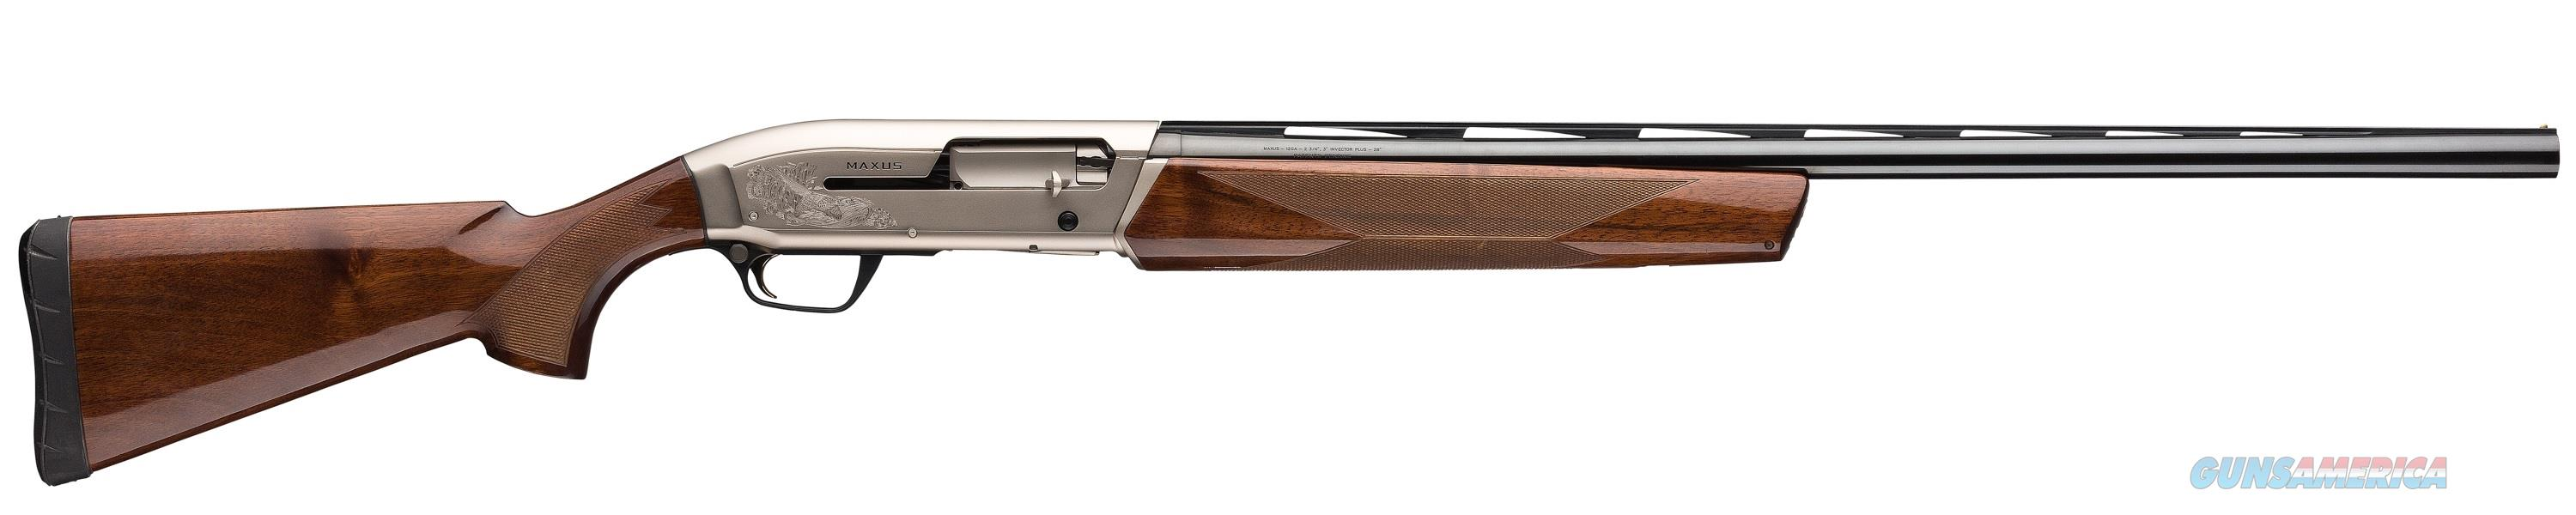 "Browning Maxus Hunter 12 GA 30"" Walnut 011608303  Guns > Shotguns > Browning Shotguns > Autoloaders > Hunting"